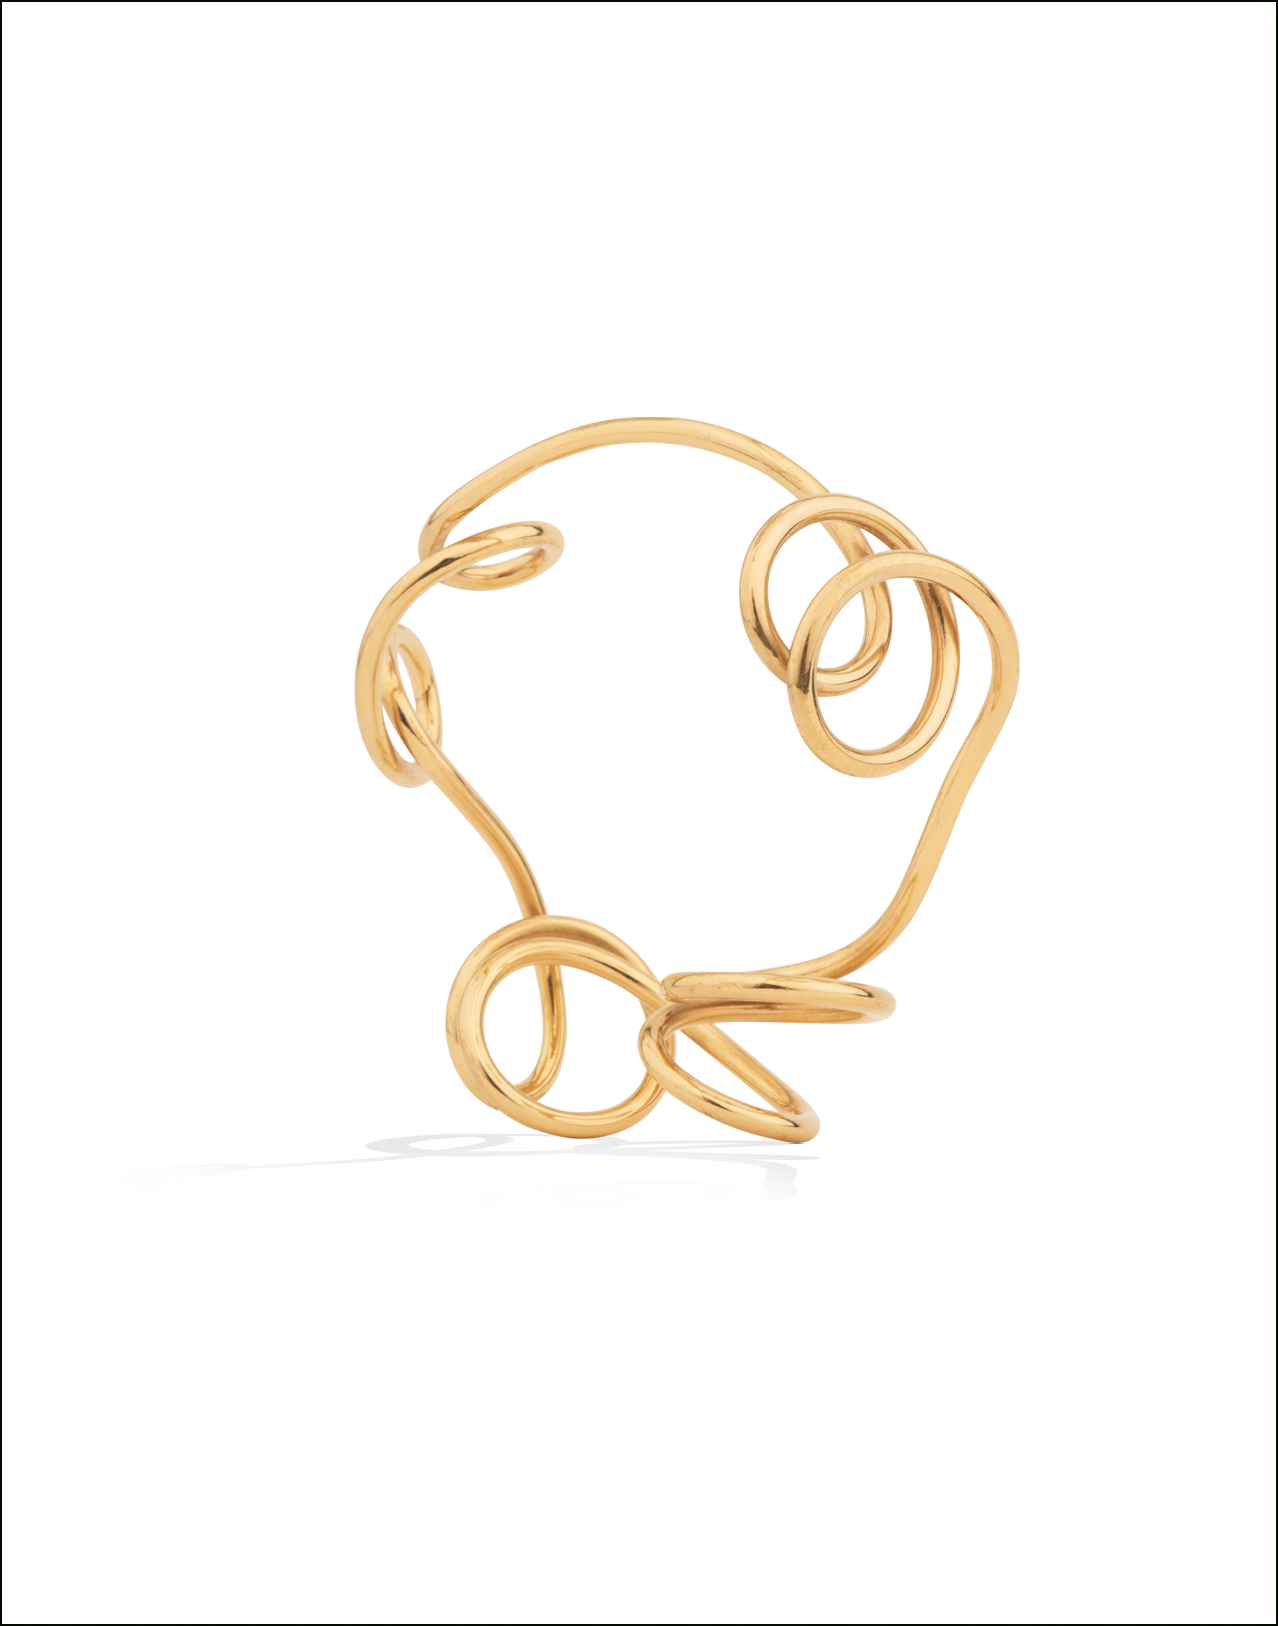 Completedworks-Cuff-Gold-Vermeil-An-Element-of-Suspense-4-1.png